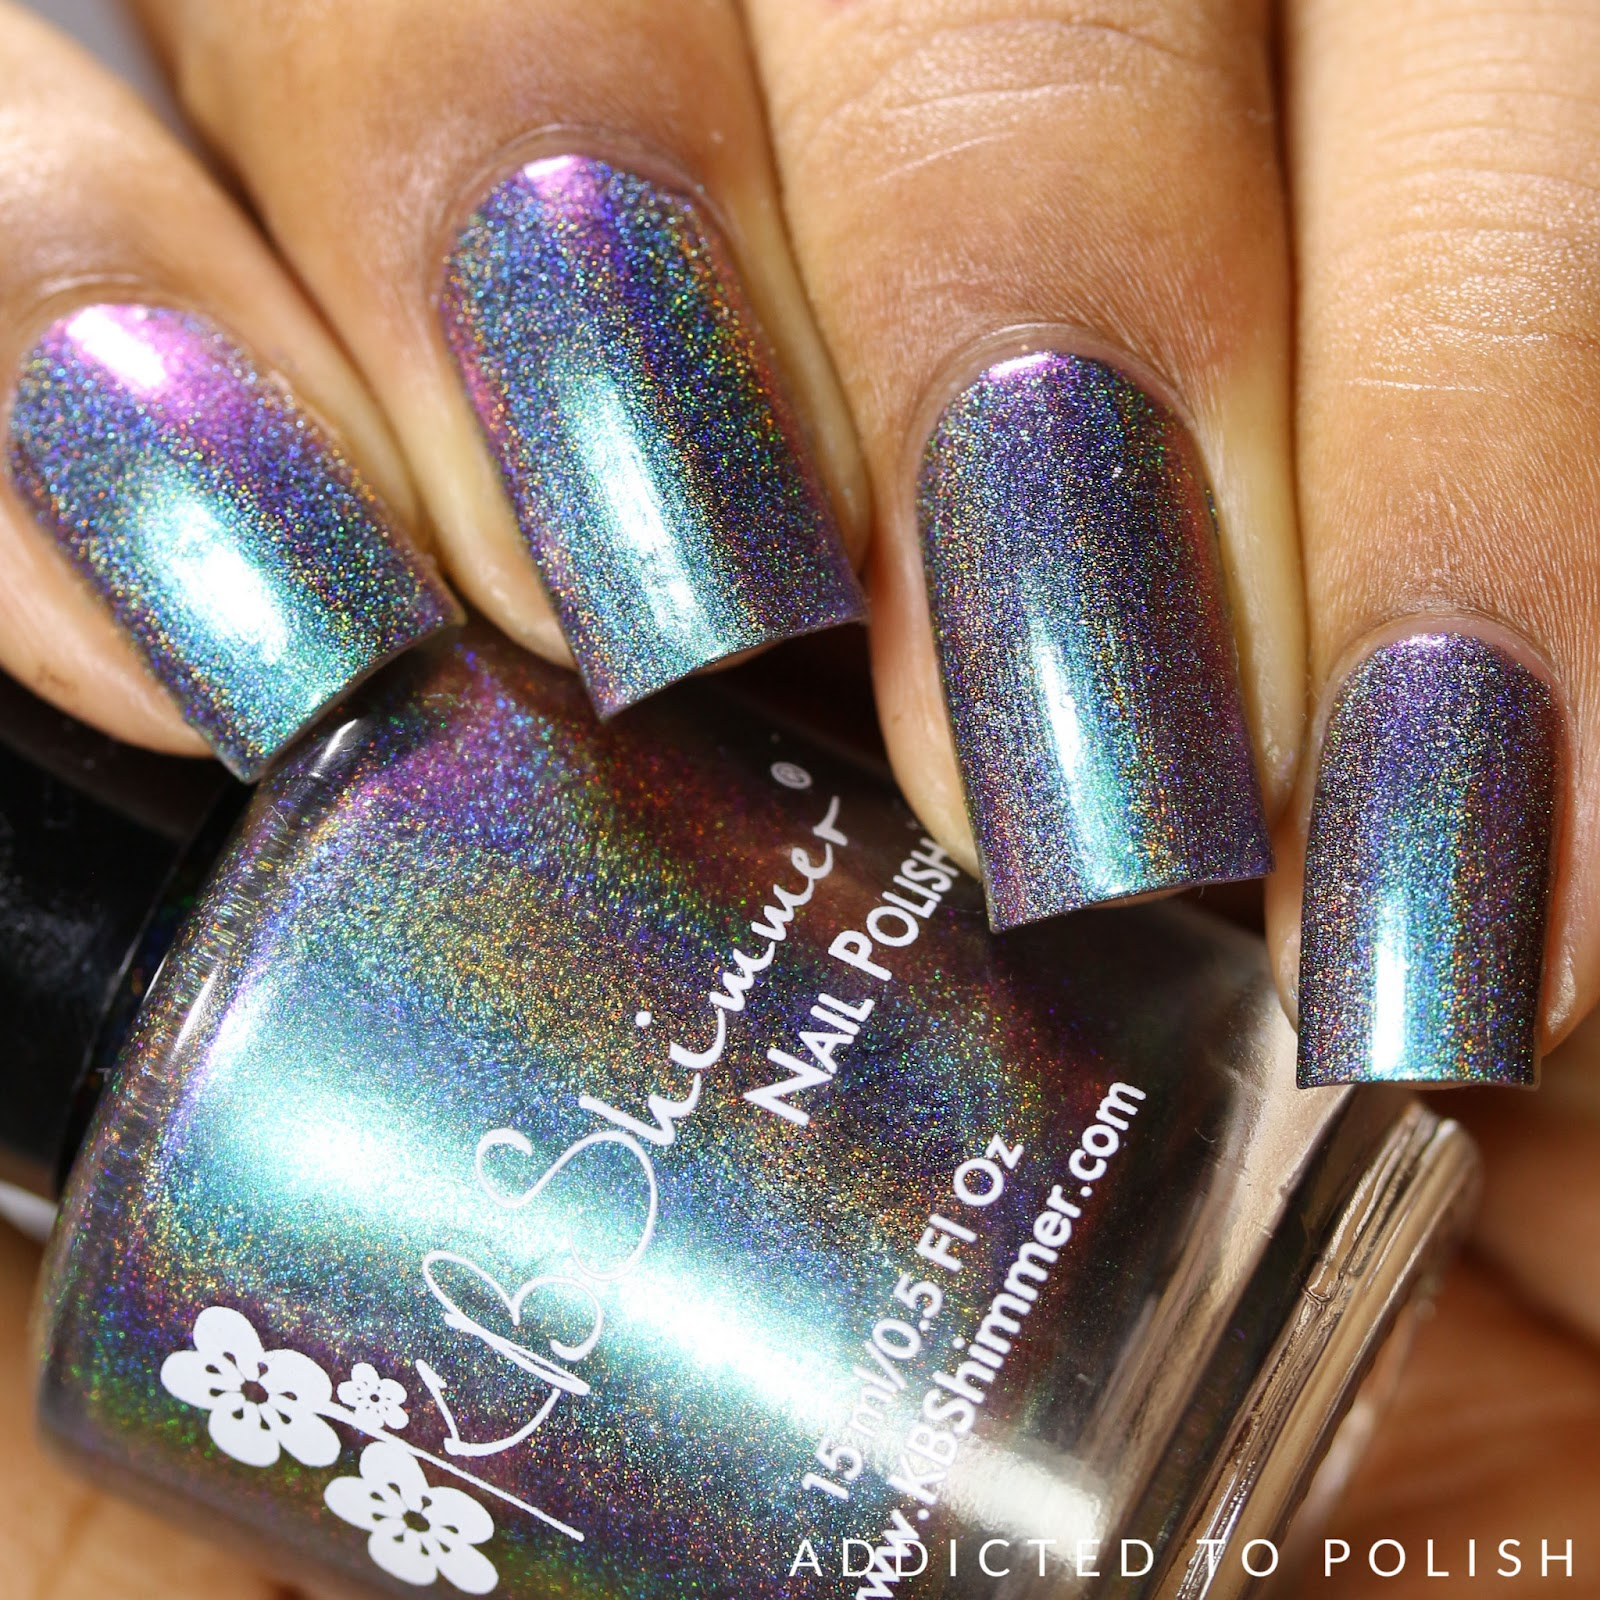 KBShimmer None of Your Bismuth Hella Holo Customs